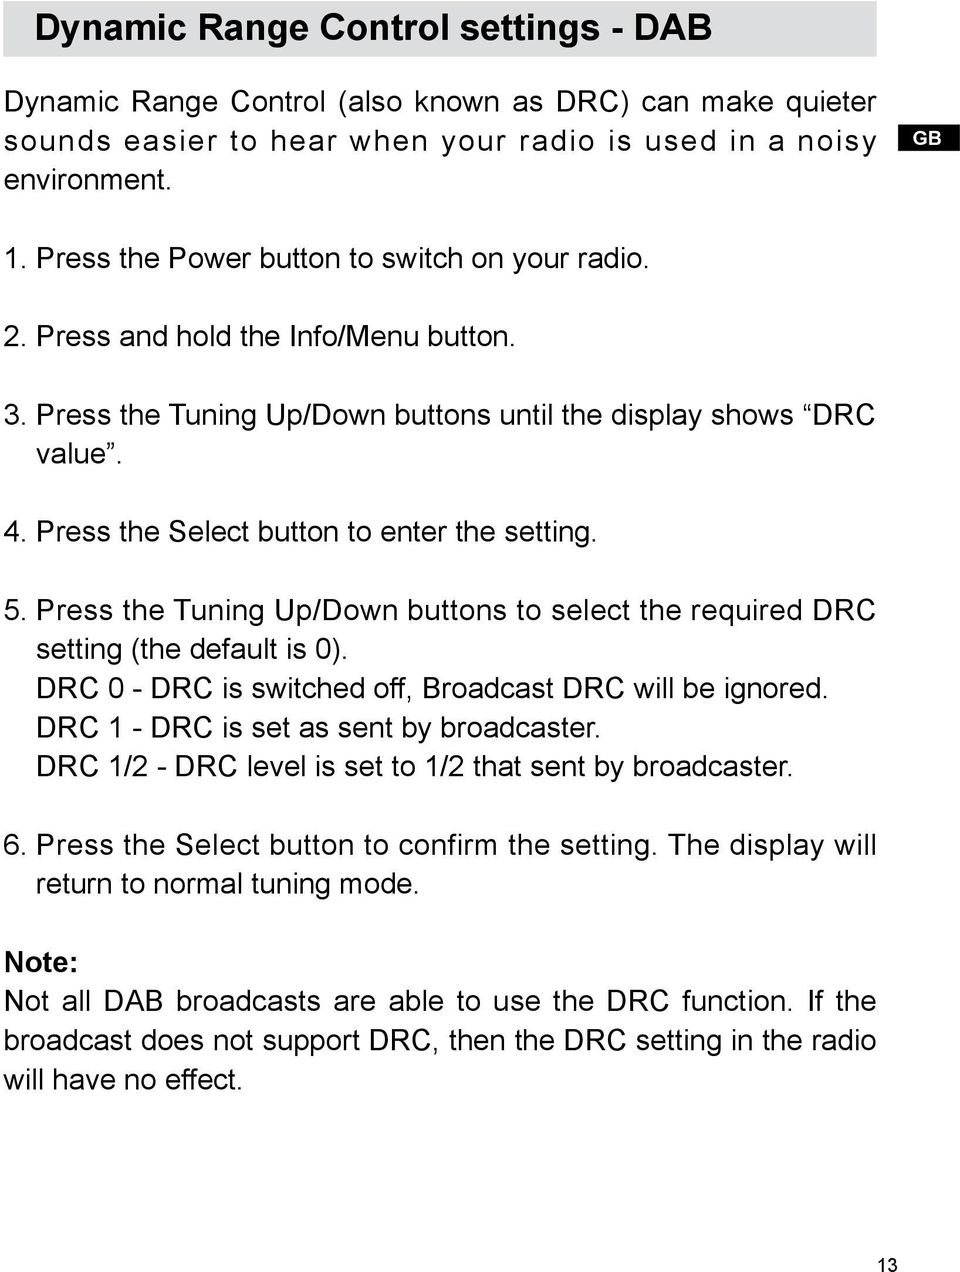 Press the Select button to enter the setting. 5. Press the Tuning Up/Down buttons to select the required DRC setting (the default is 0). DRC 0 - DRC is switched off, Broadcast DRC will be ignored.